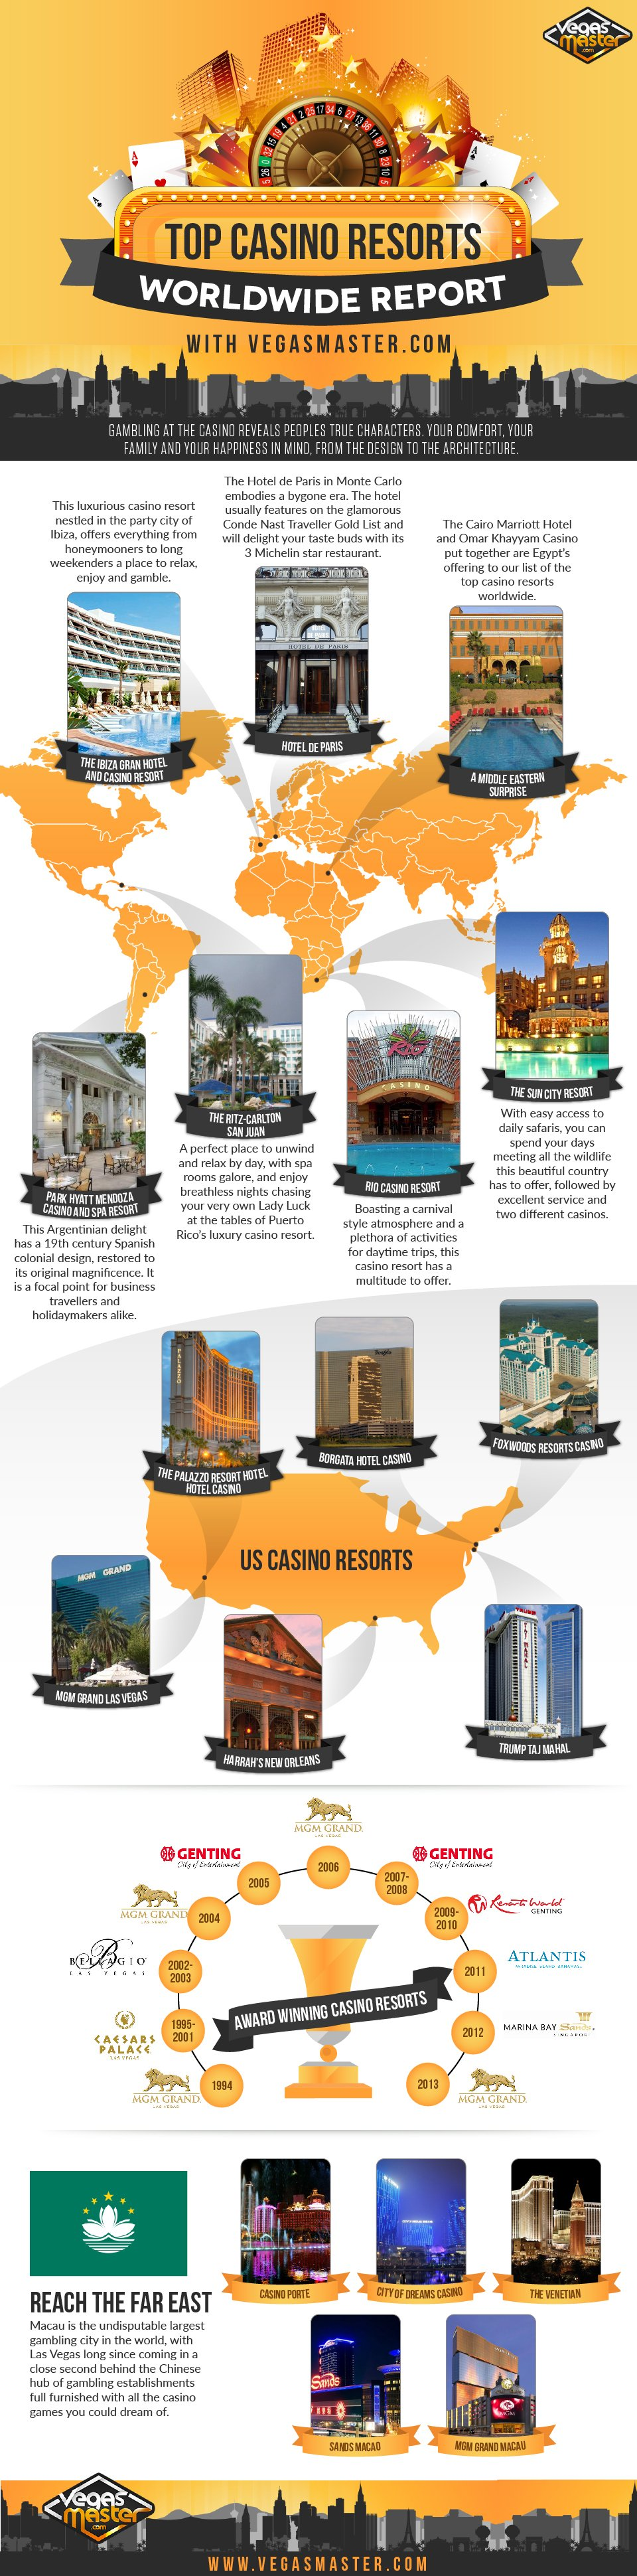 Find top casino resorts worldwide play relax in tyle for Special hotels worldwide